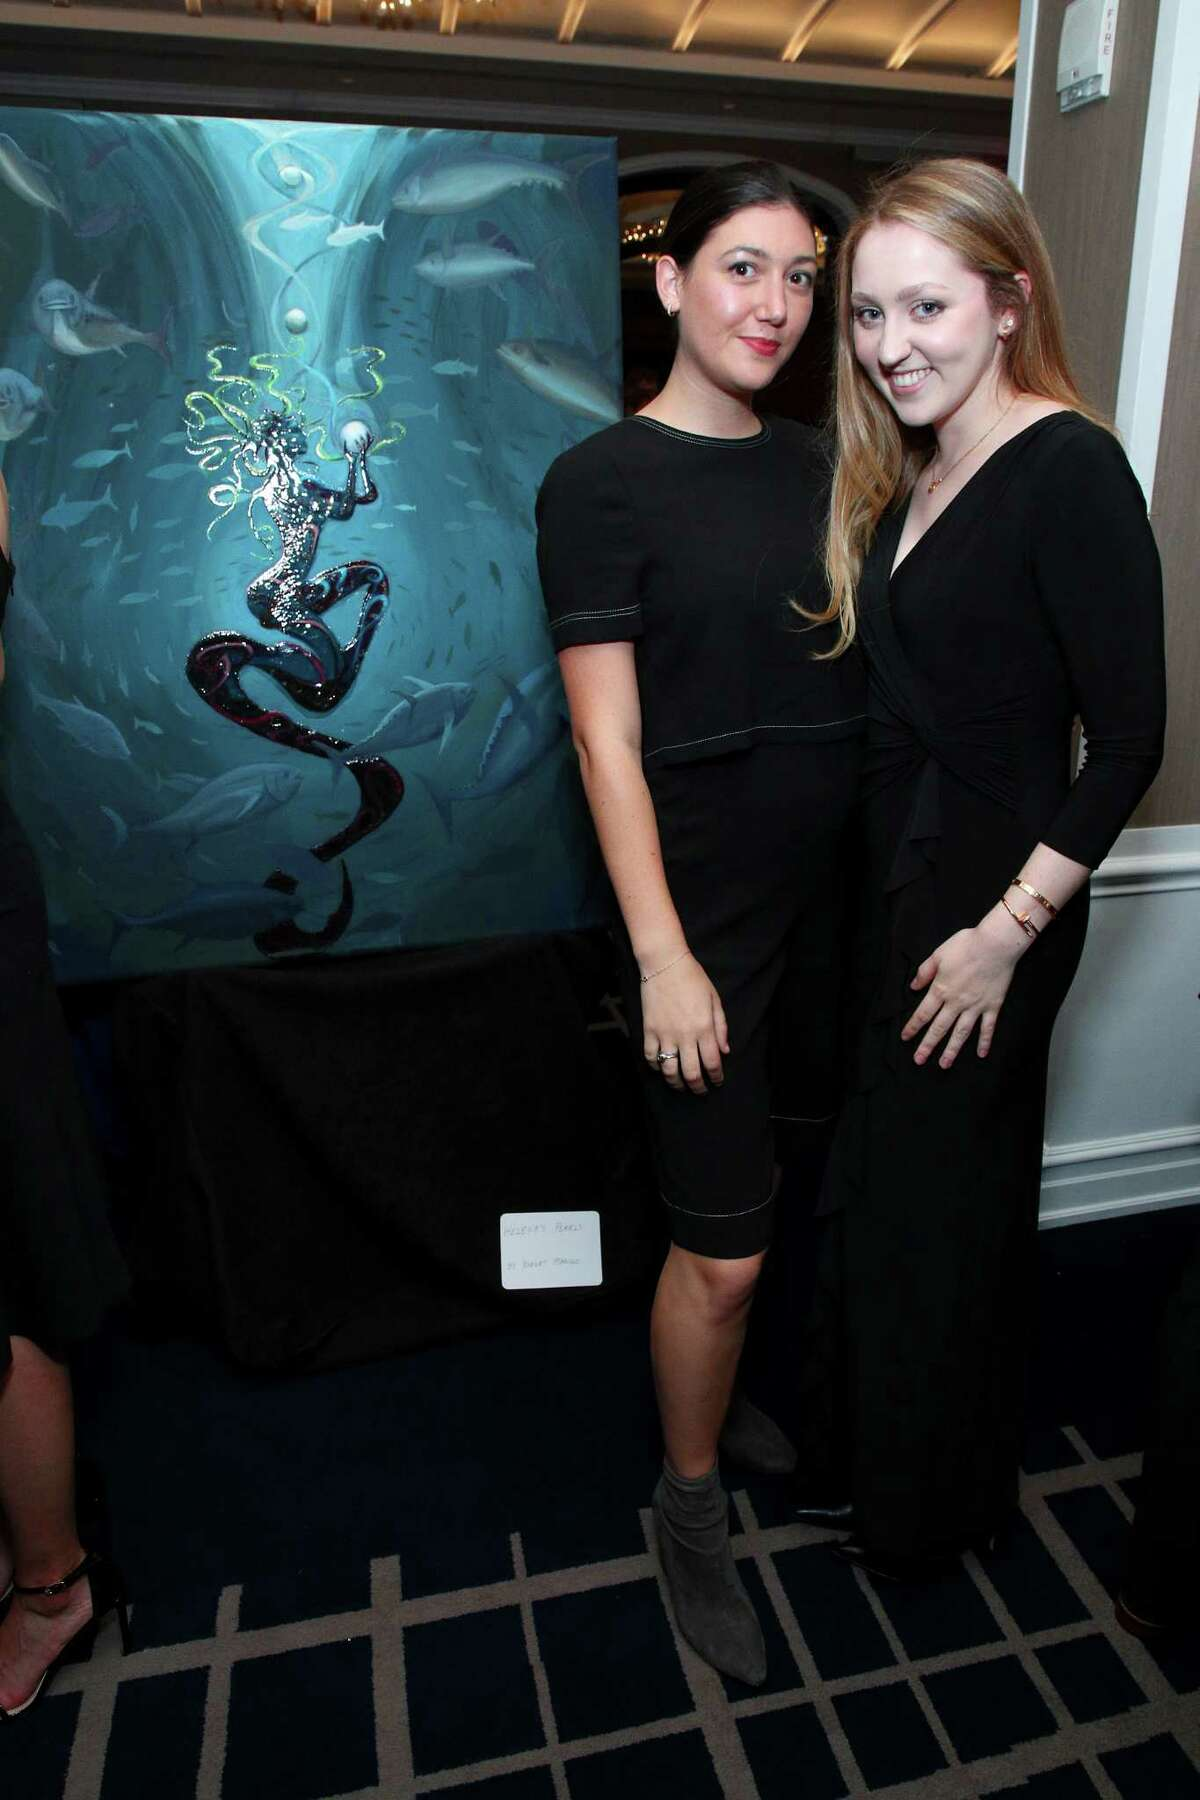 Lucy Grebin and Liz Buzbee attend the unveiling of Paul Giamatti Fundraiser for the Denali Foundation at the Yale Club on October 24, 2019 in New York City.